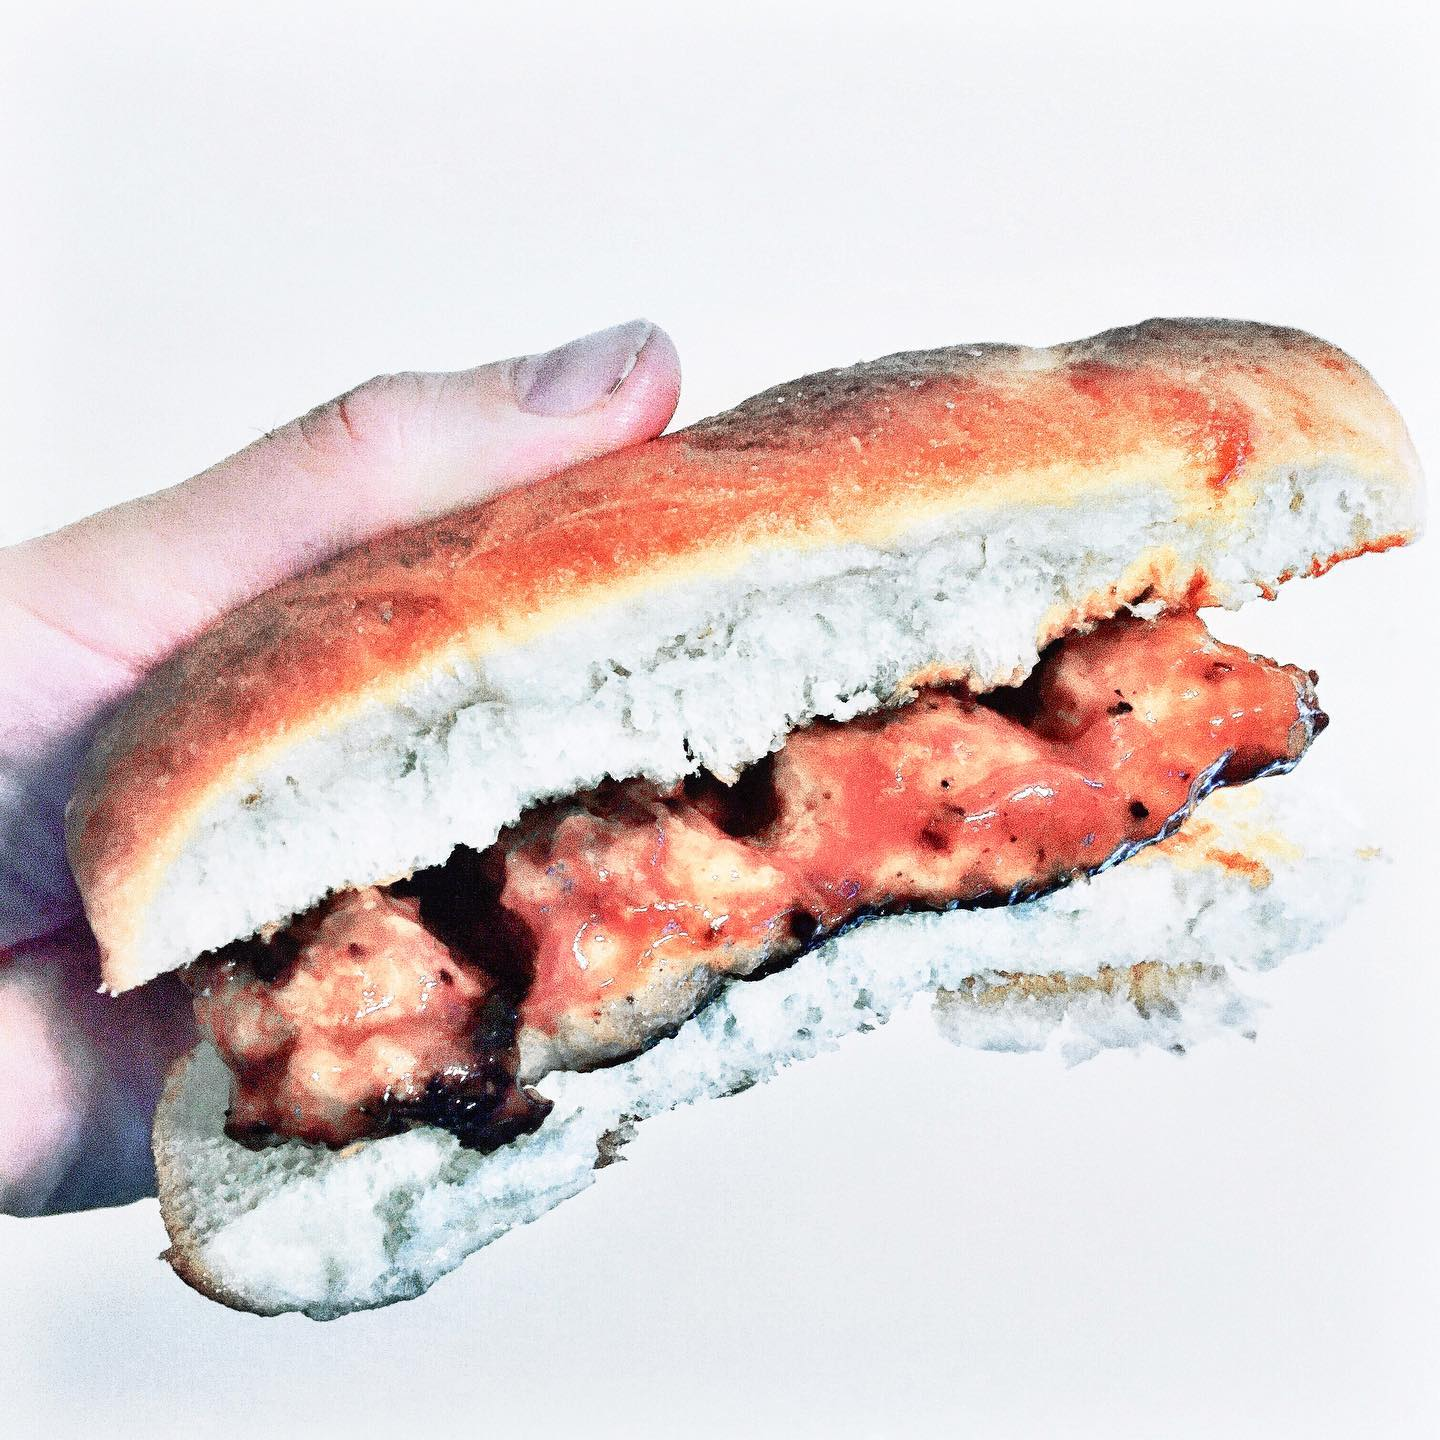 A hand holds a McRib-style sandwich on a white background